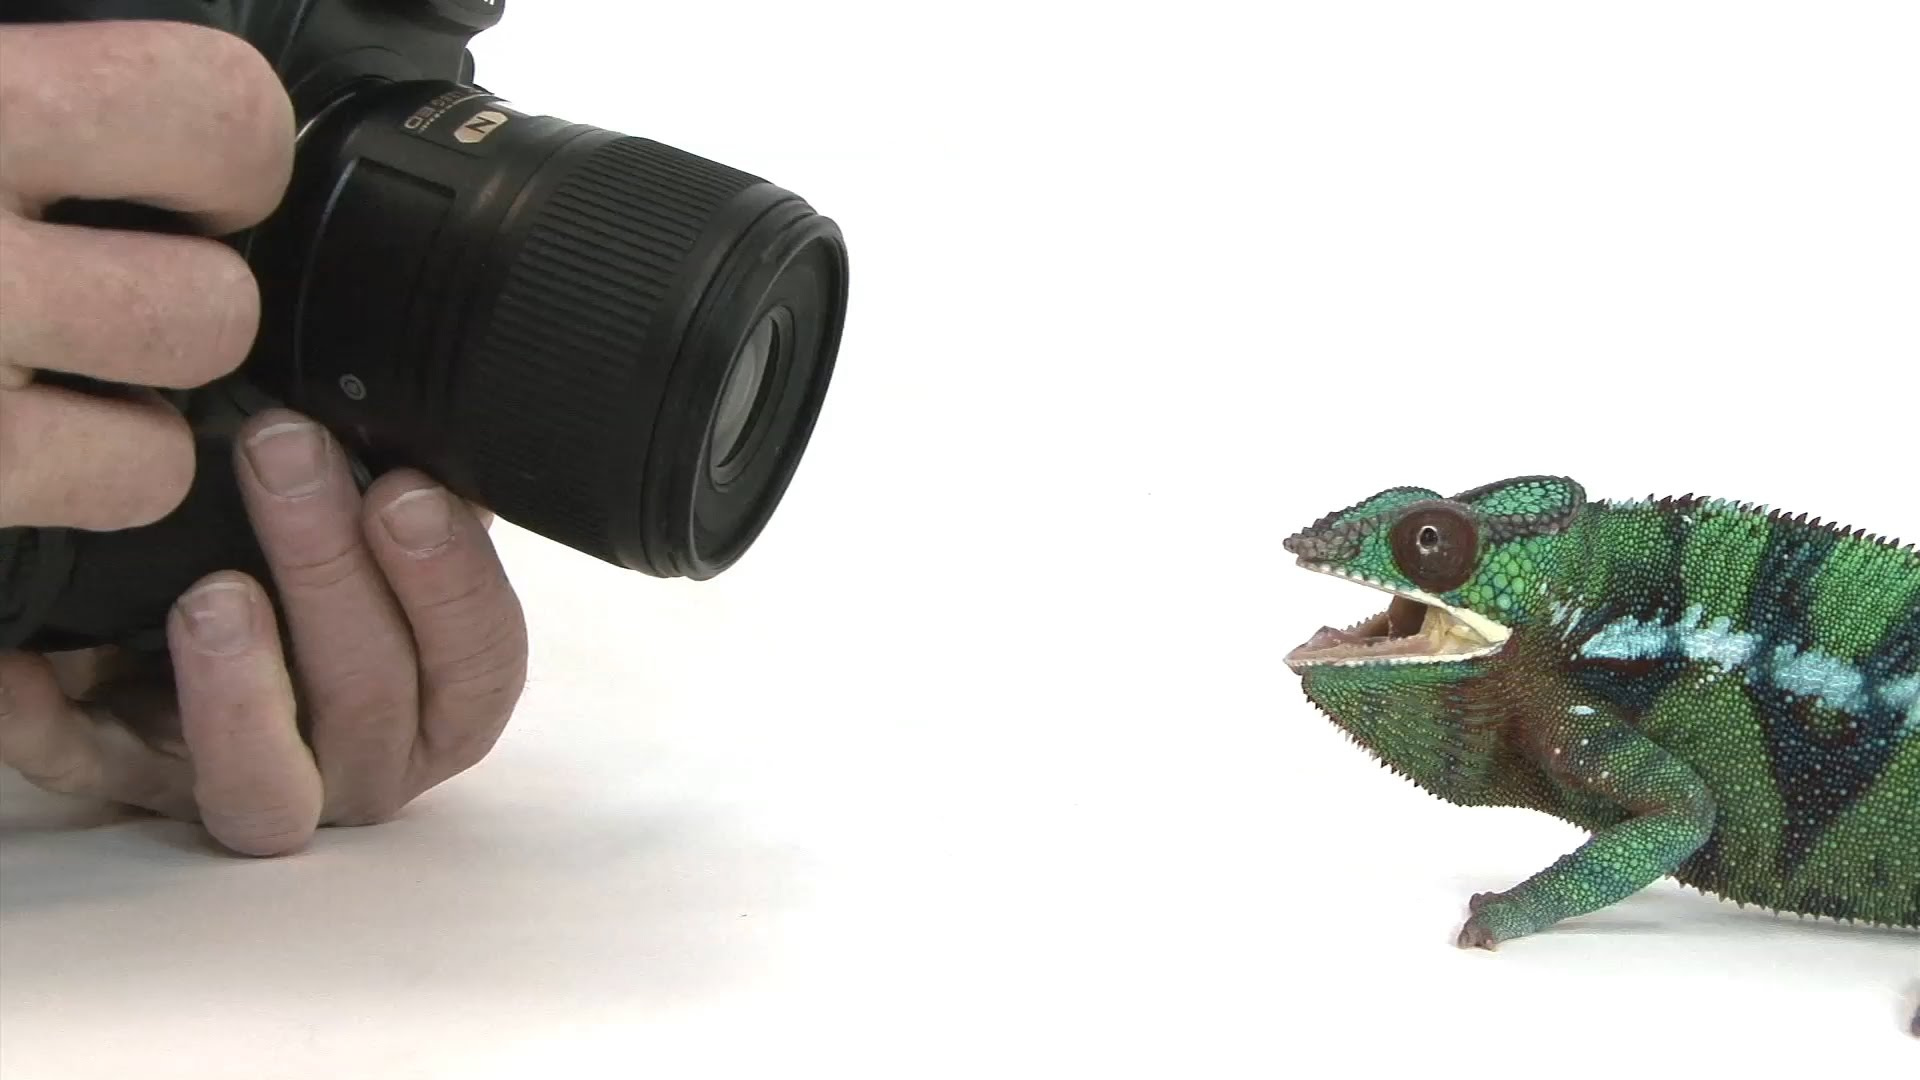 Ambitious Journalist Attempts to Photograph 12,000 Endangered Animals Before They Become Extinct